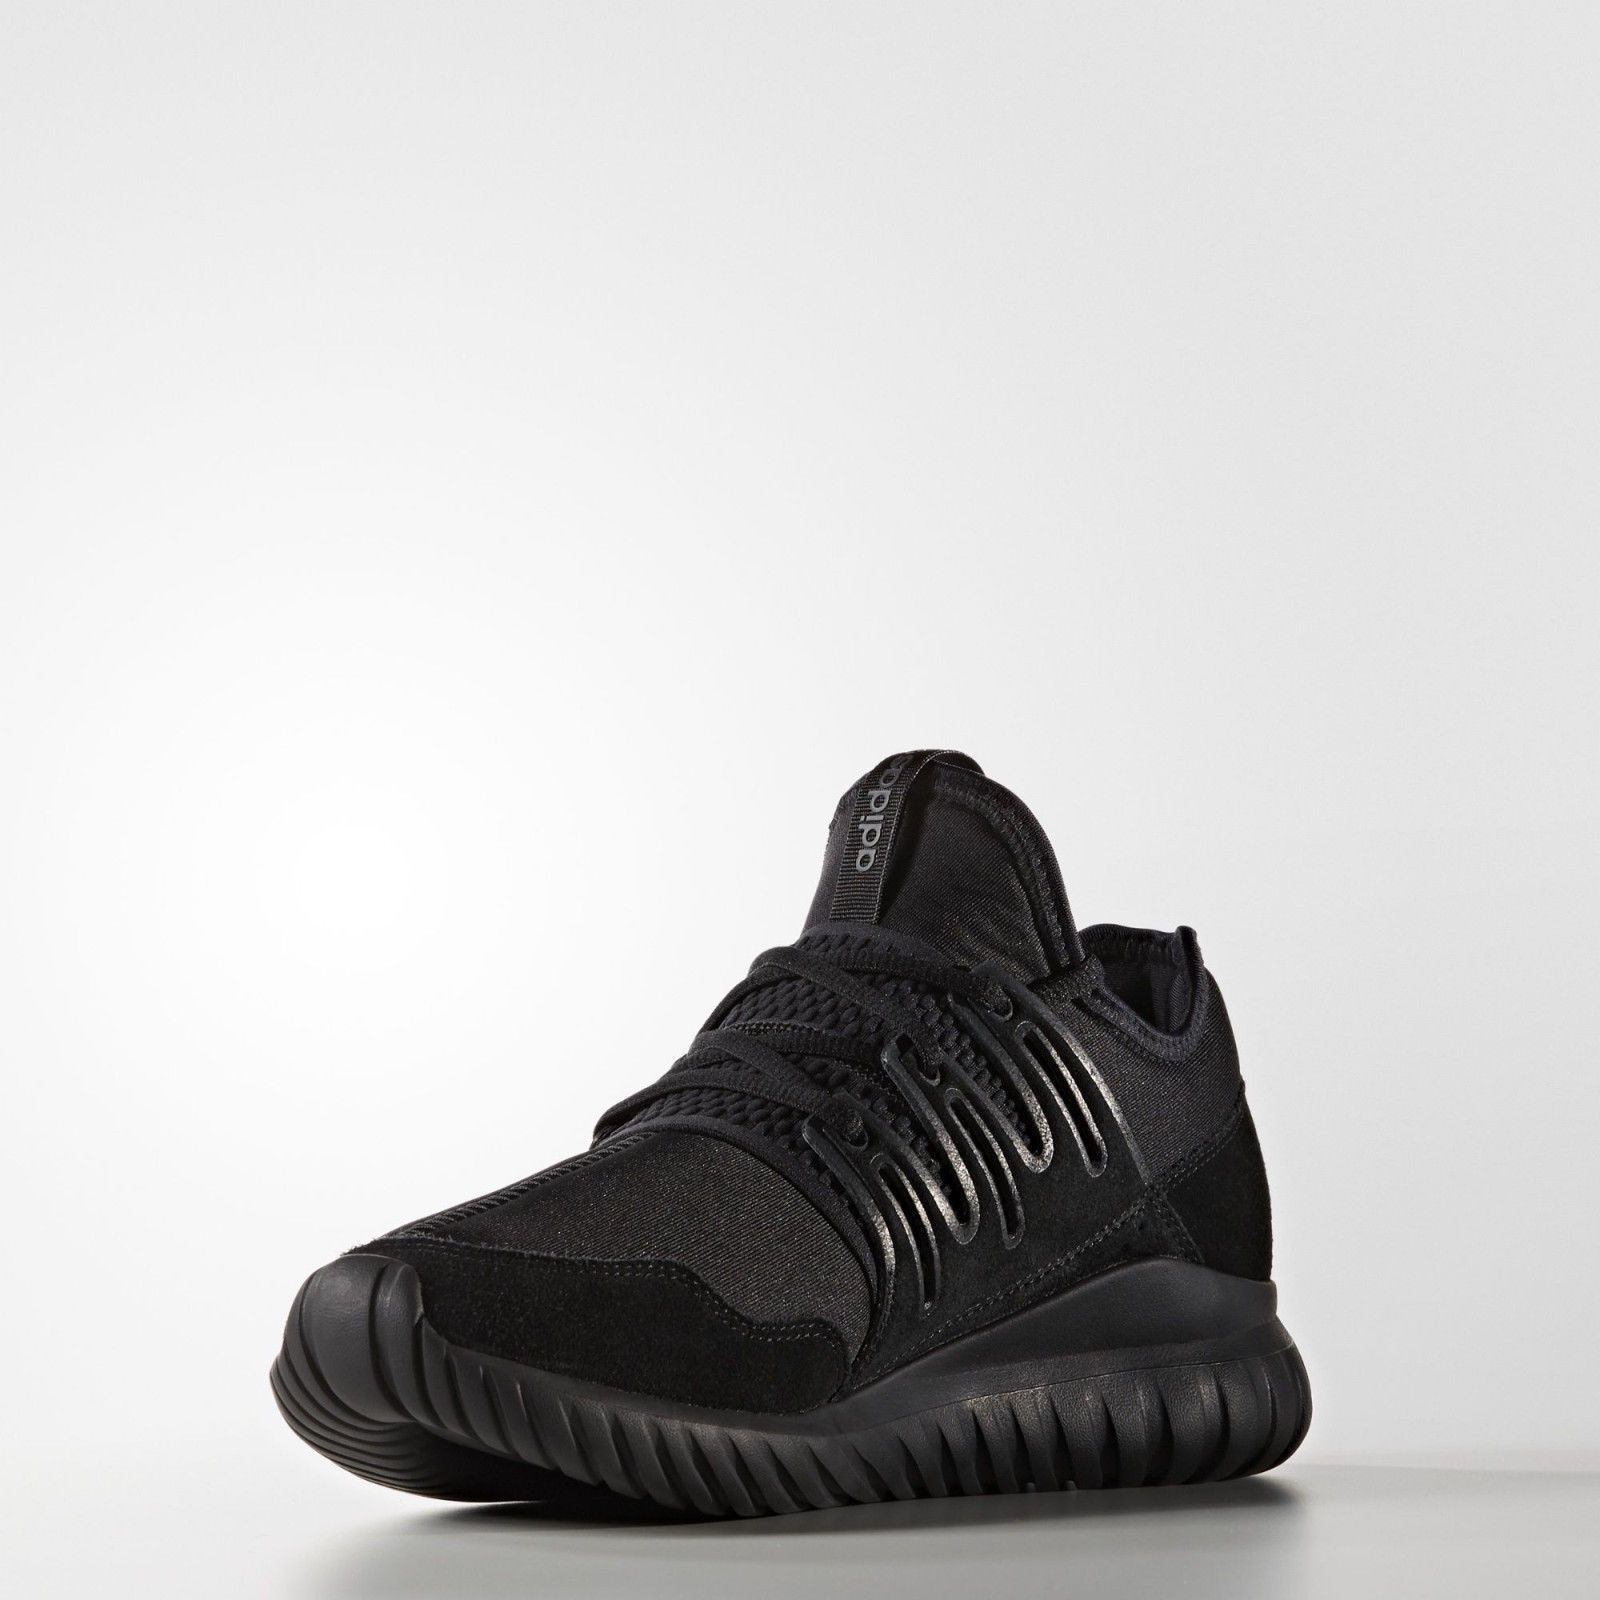 the best attitude d3d04 a2dd7 NEW S80115 MENS ADIDAS ORIGINALS TUBULAR RADIAL SHOES TRIPLE BLACK-GREY  DOOM